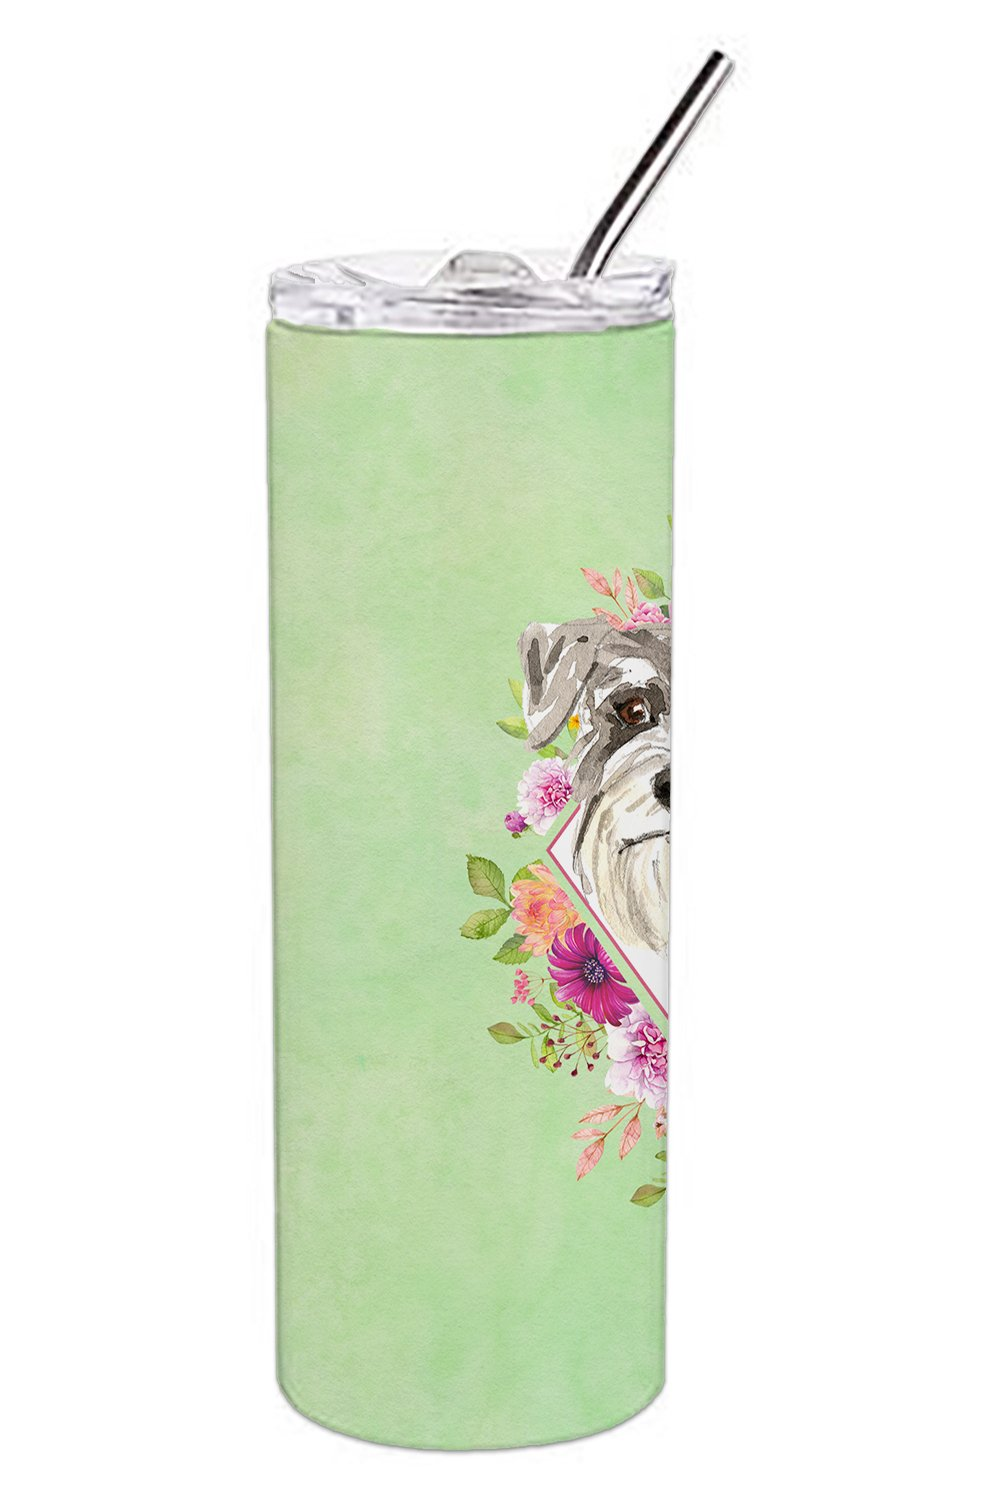 Schnauzer #1 Green Flowers Double Walled Stainless Steel 20 oz Skinny Tumbler CK4375TBL20 by Caroline's Treasures